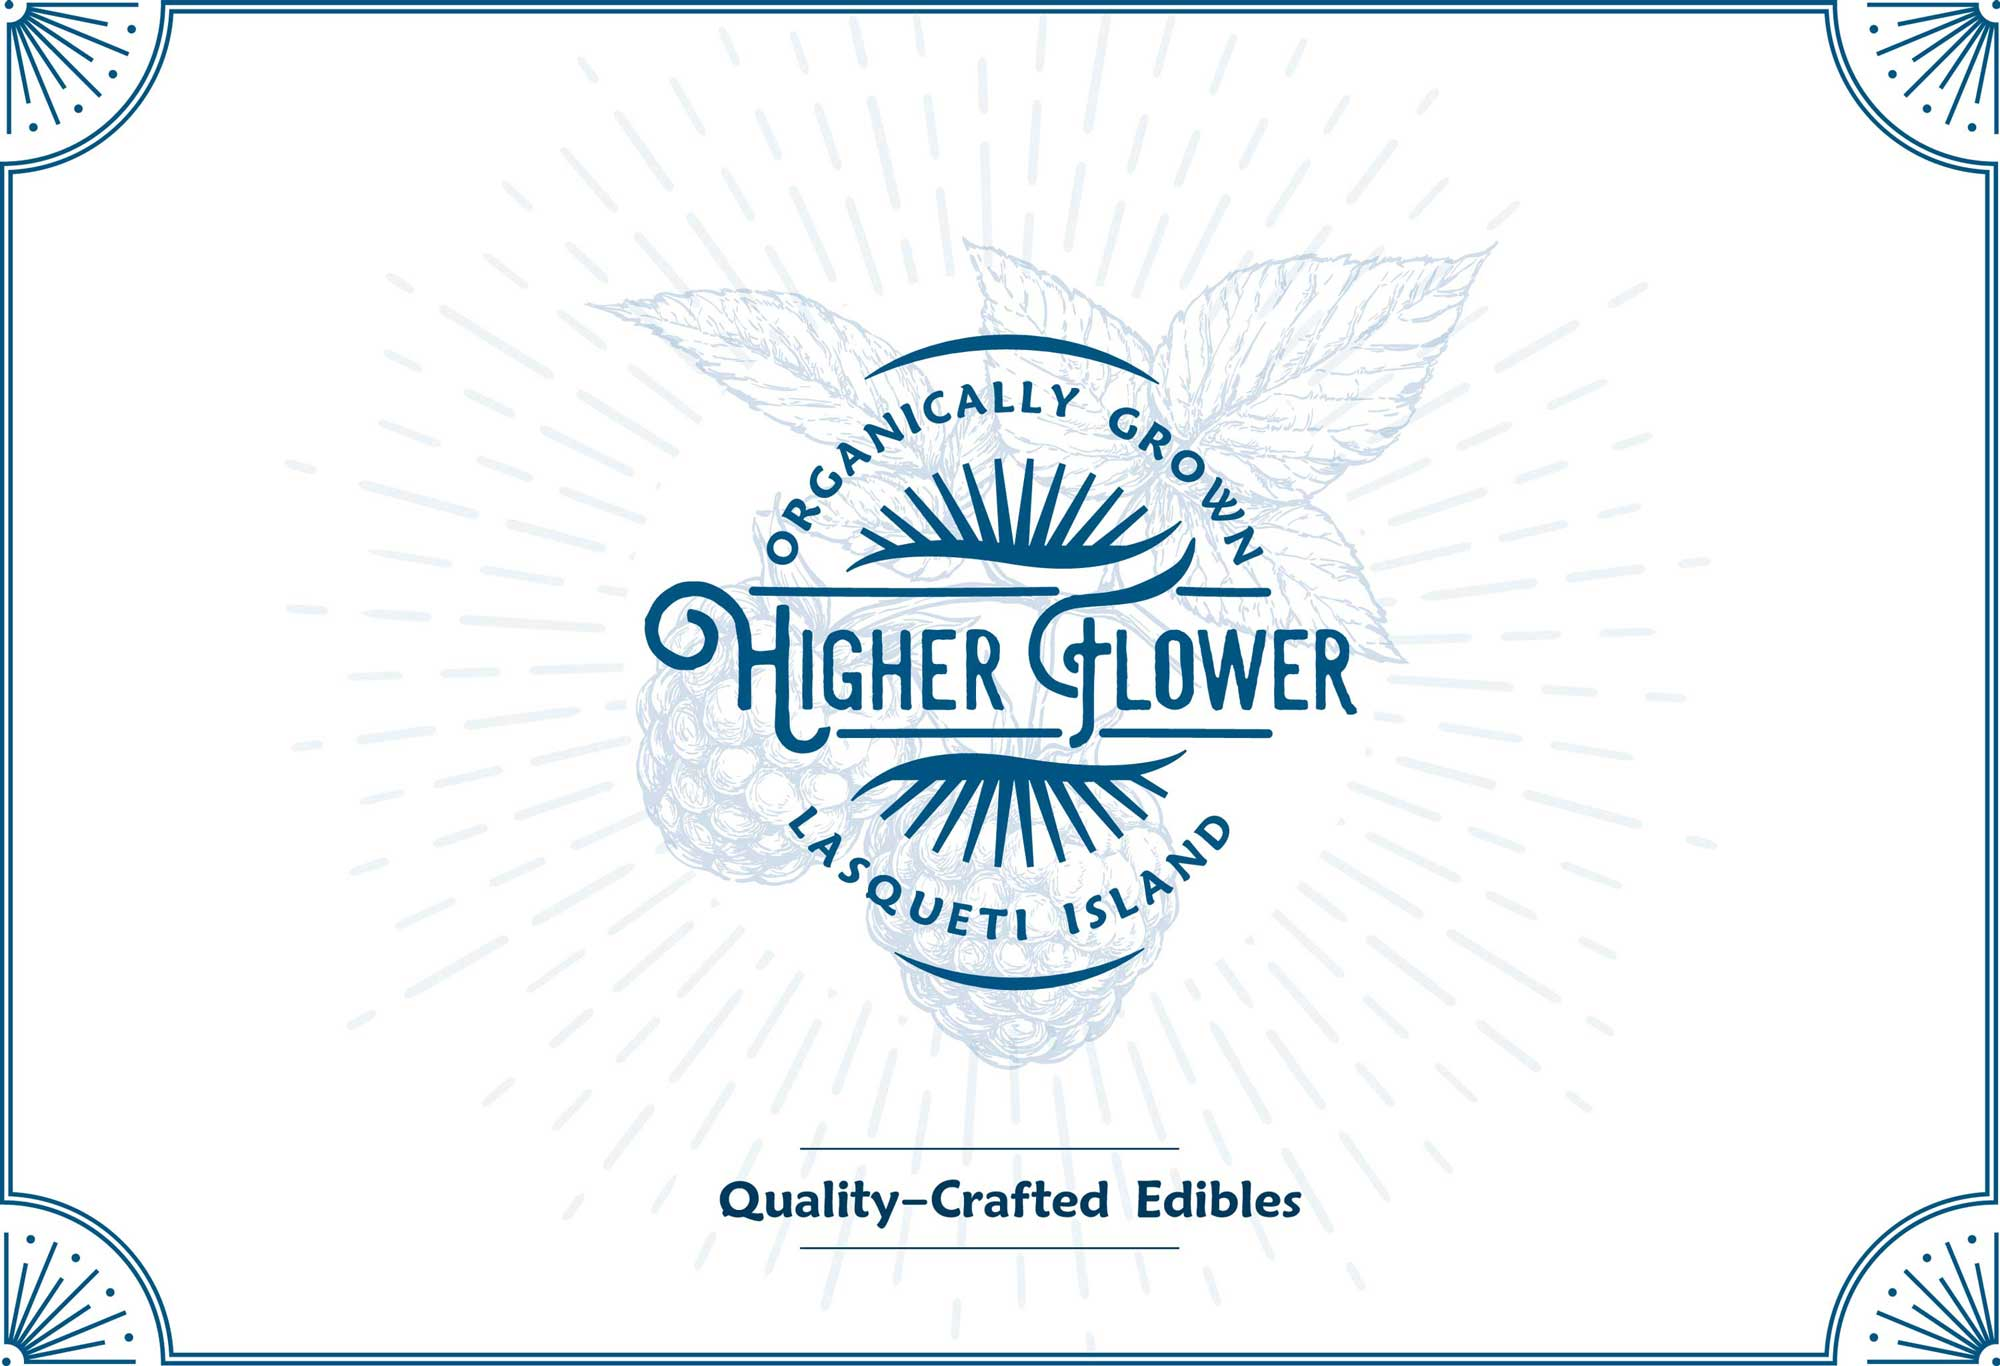 Higher Flower Quality Crafted Cannabis Edibles